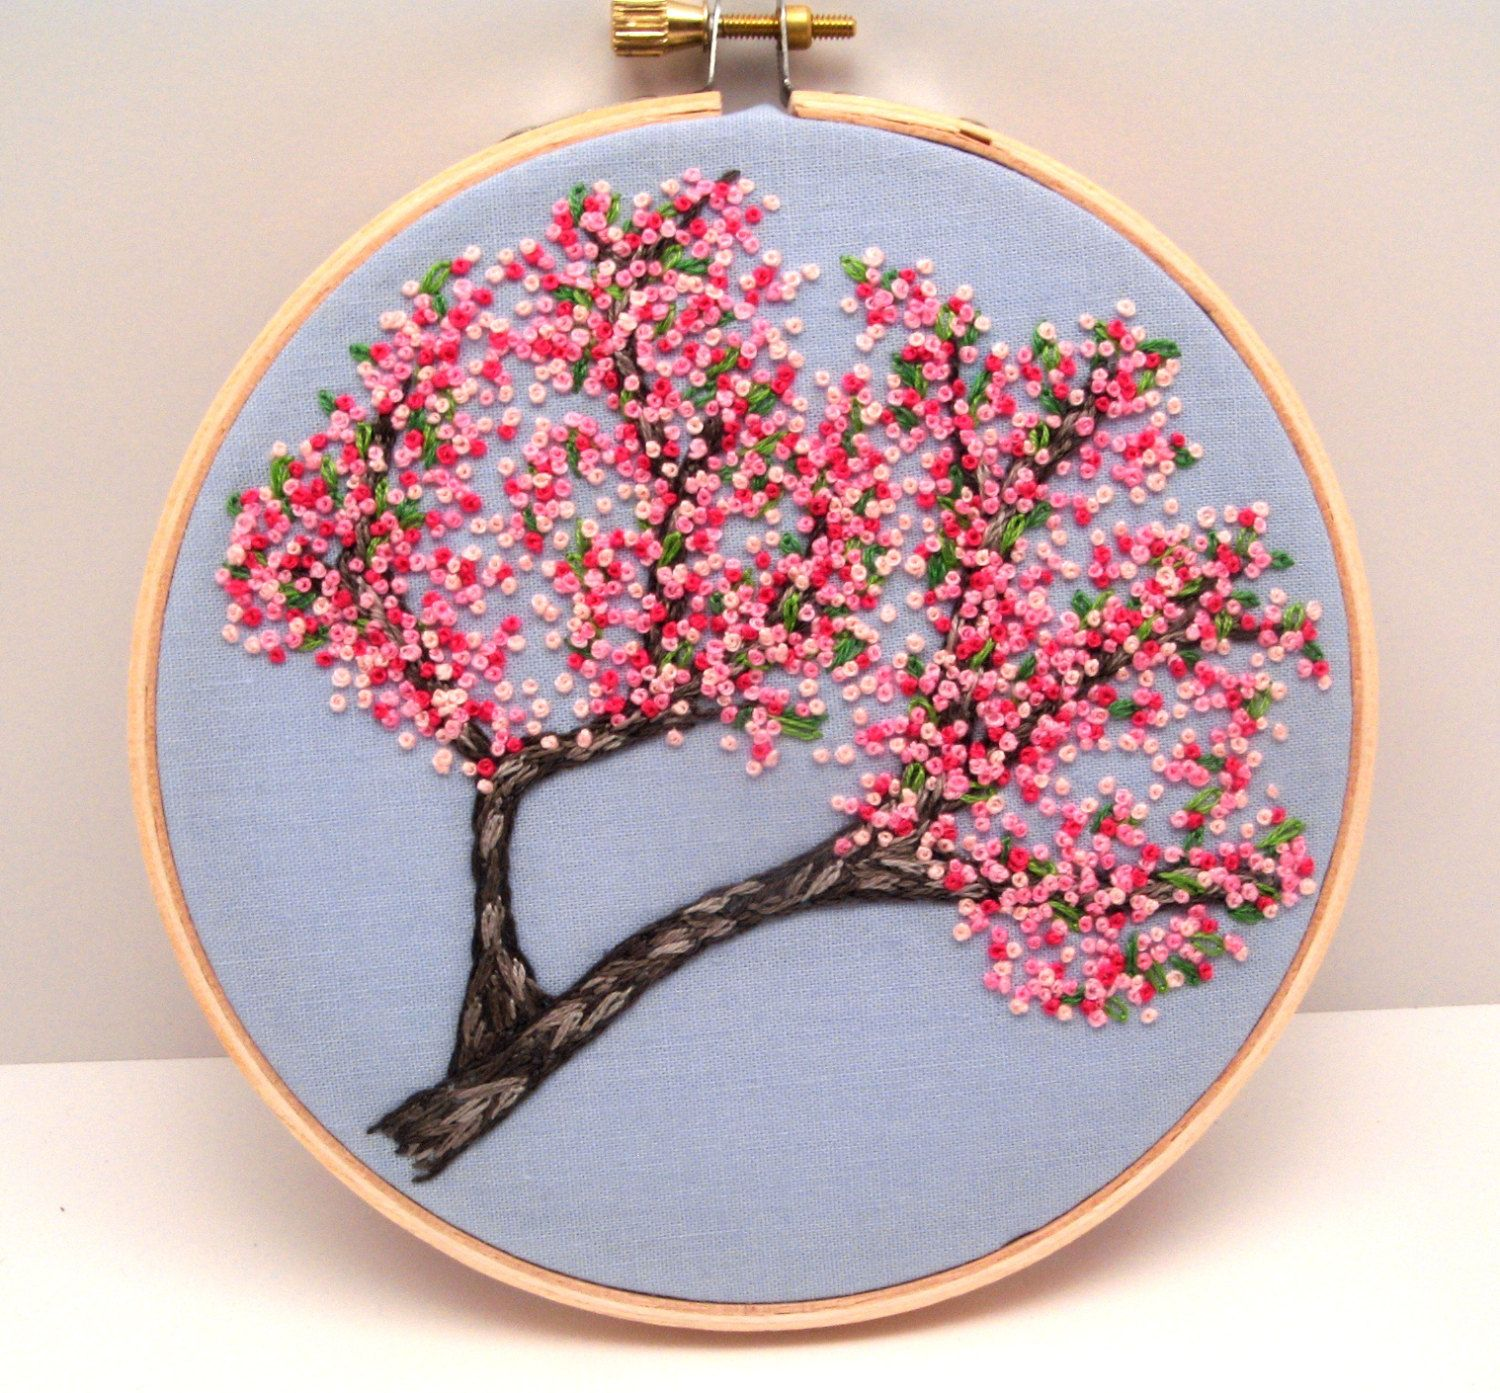 Cherry Blossoms Hand Embroidery Tutorial Pattern Pdf Digital Pink Spring Flowers Hand Embroidery Tutorial Embroidery Hoop Art Silk Ribbon Embroidery